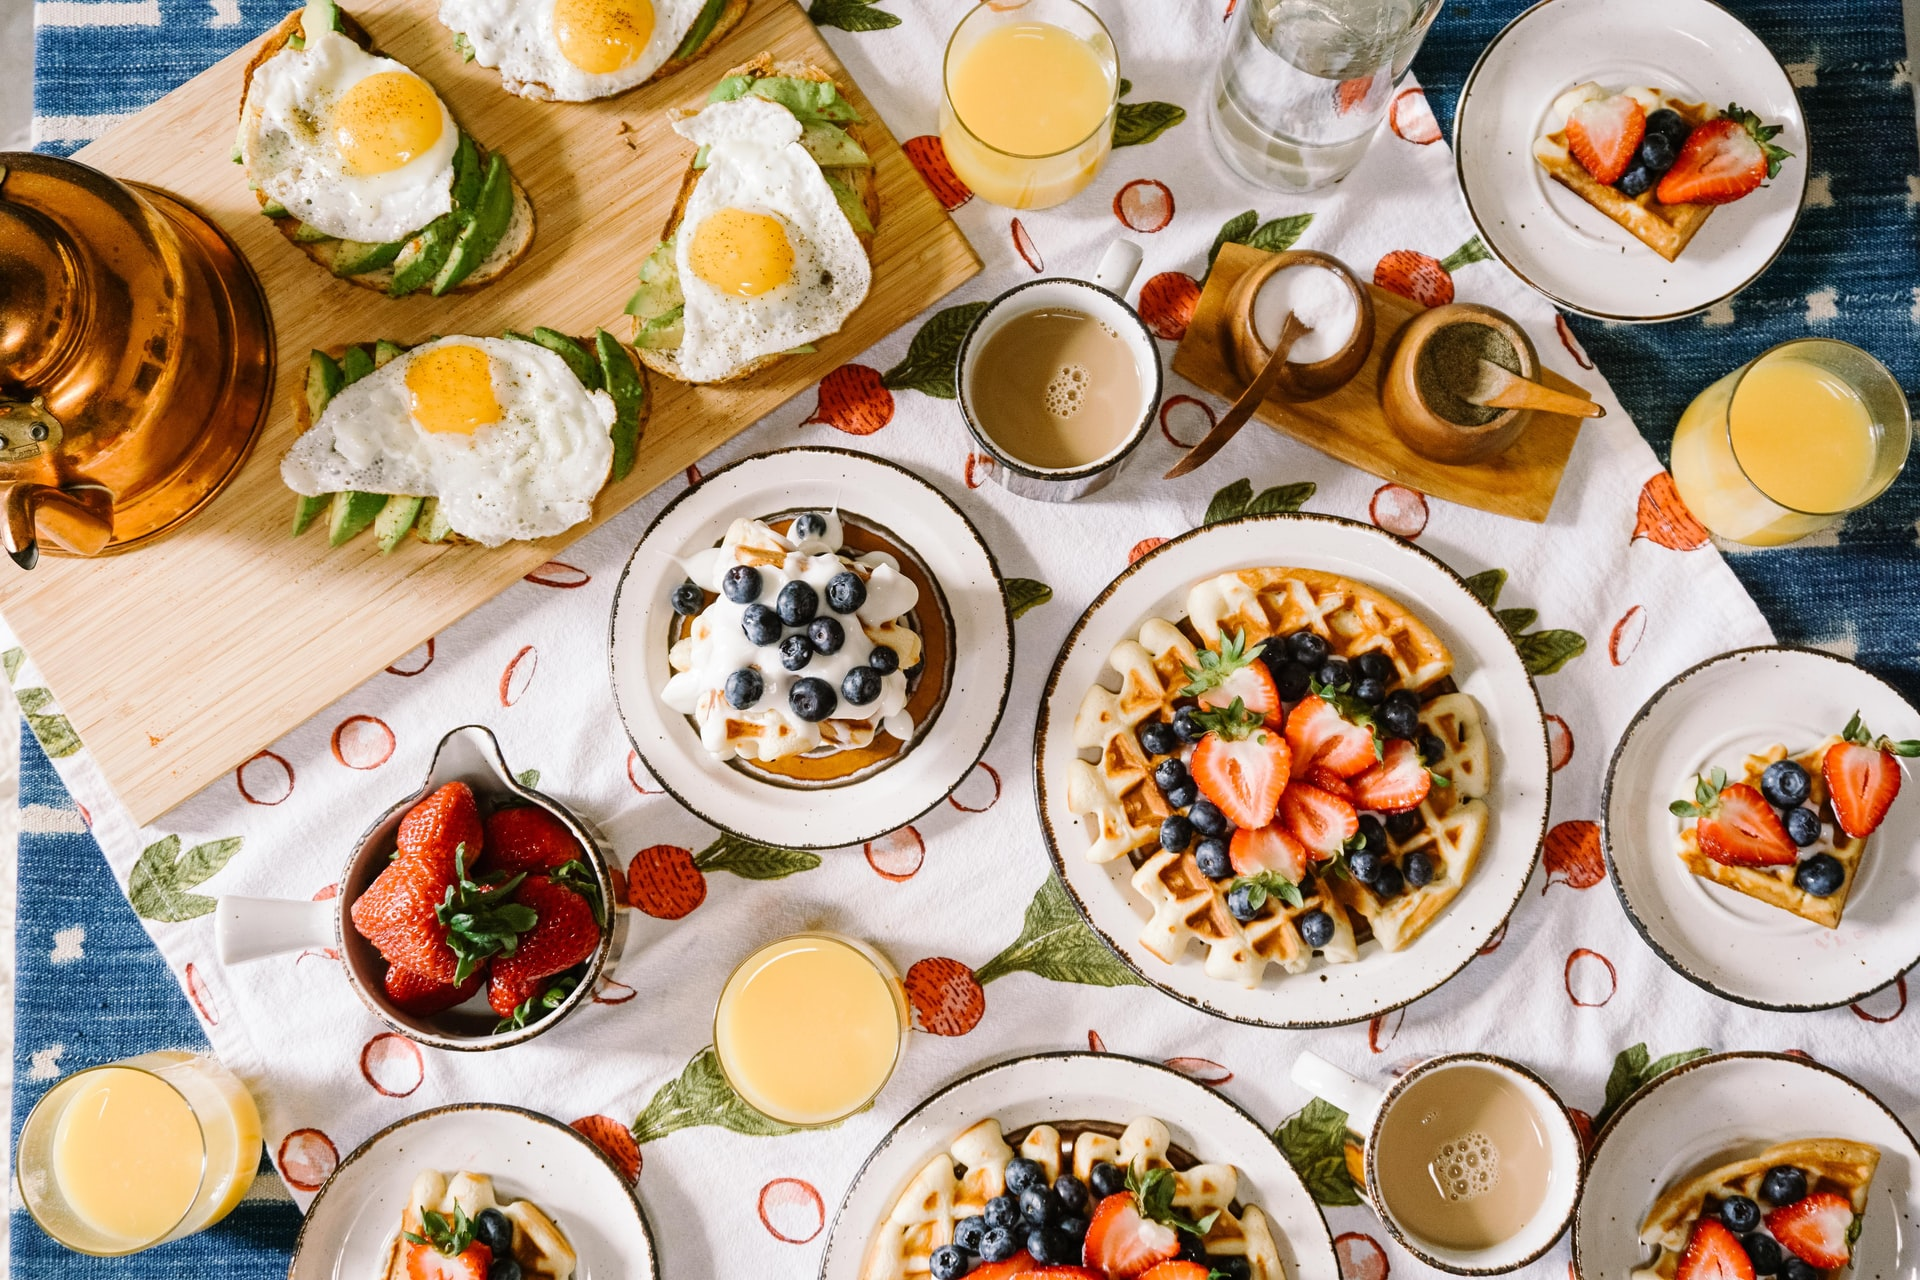 thumbnail of Unconventional Brunch Recipes to Whip Up This Father's Day